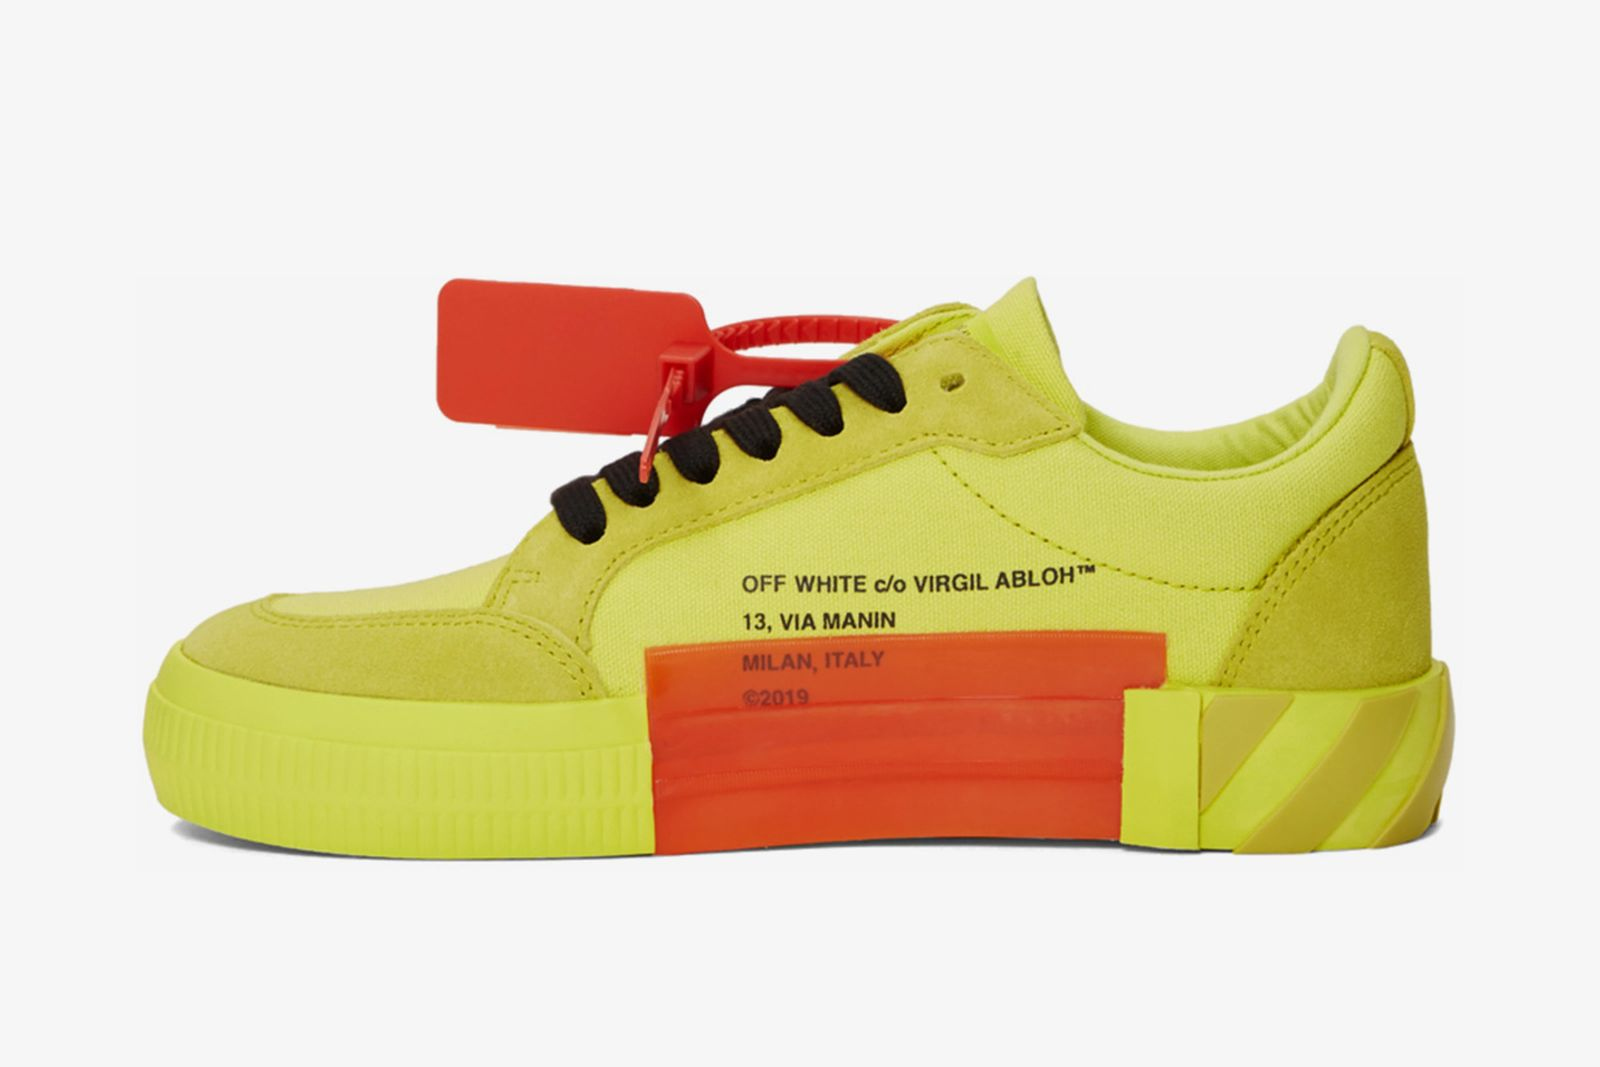 off white low vulcanized sneaker release date price OFF-WHITE c/o Virgil Abloh